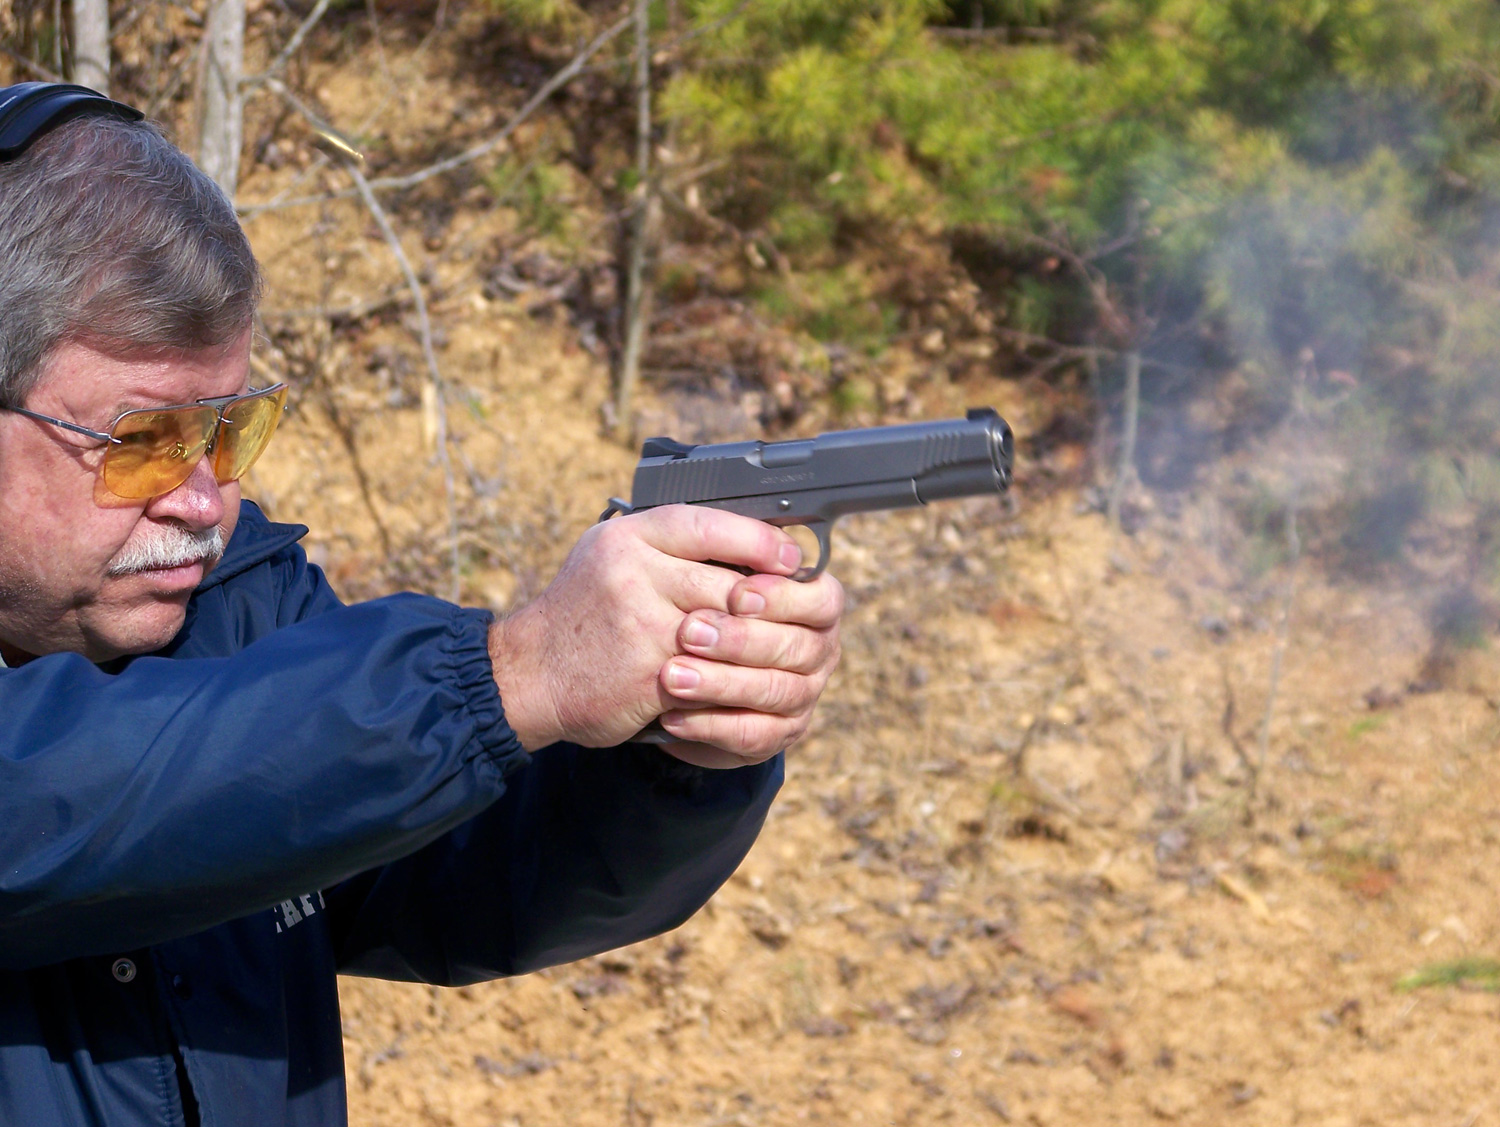 Bob Campbell shooting a pistol